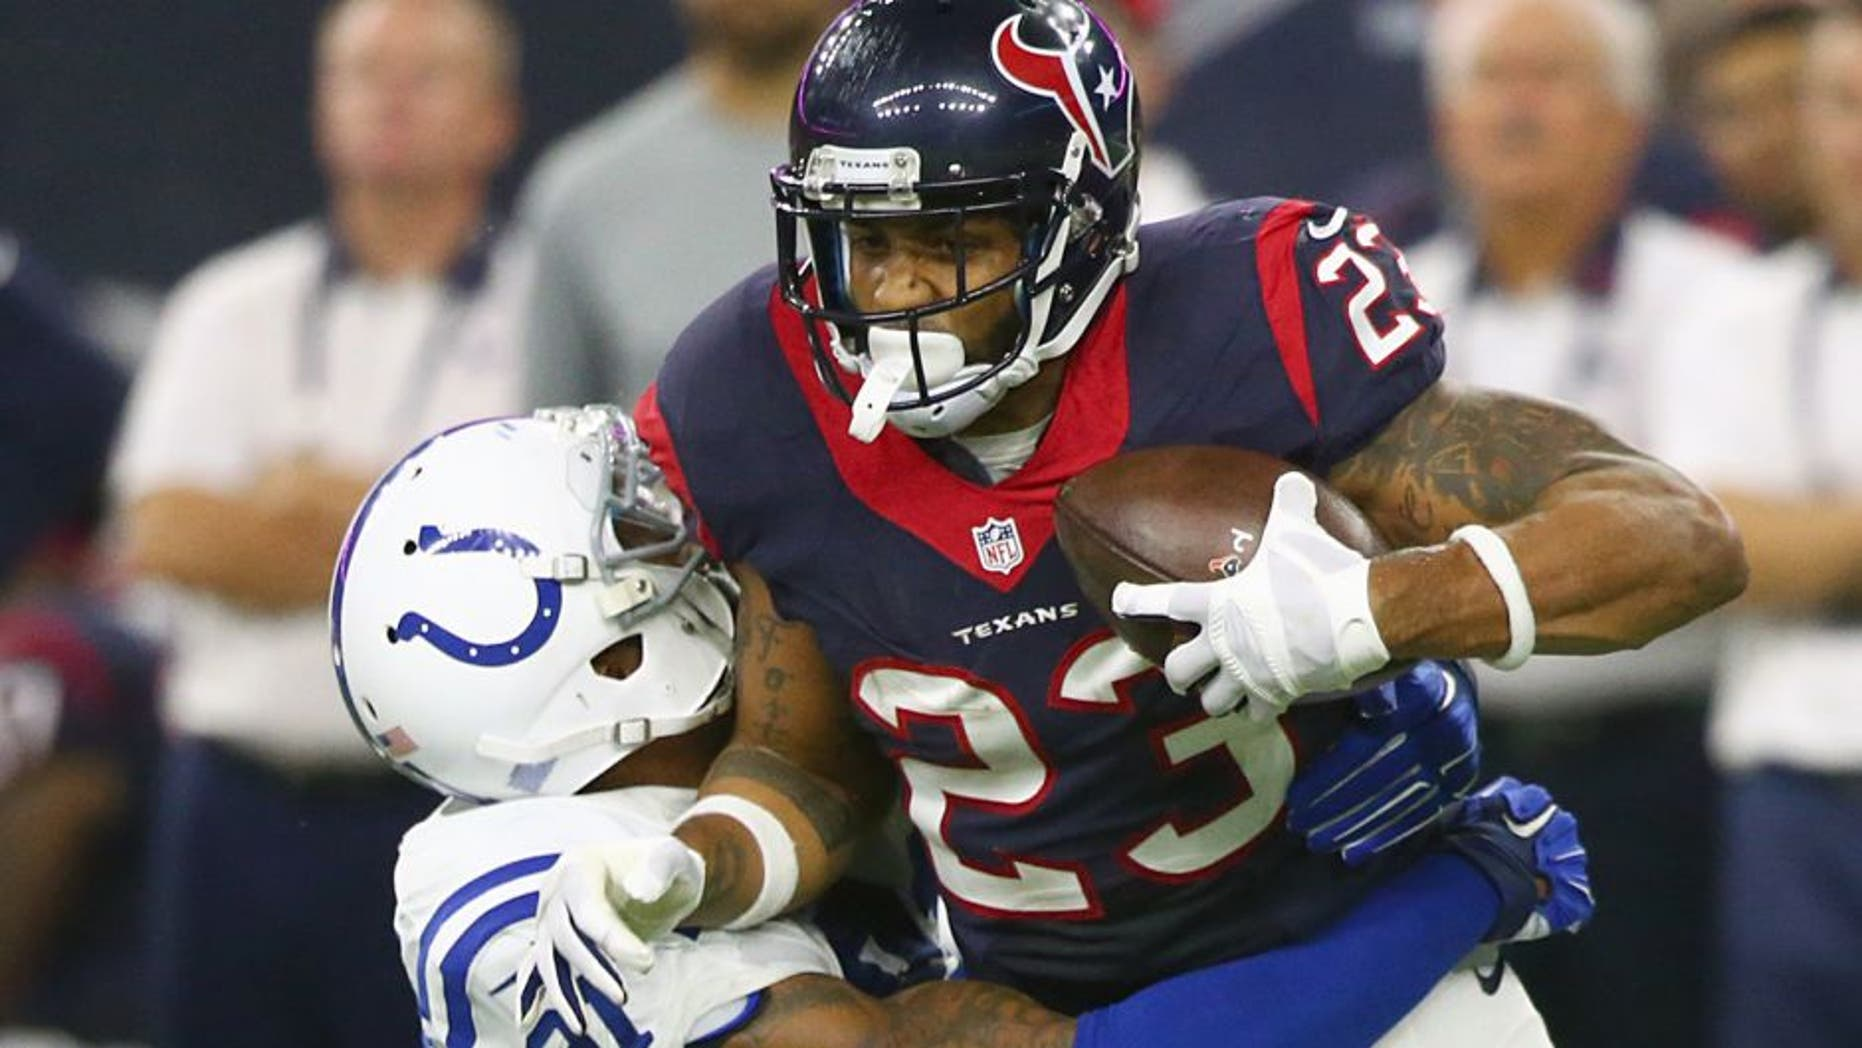 HOUSTON, TX - OCTOBER 08: Arian Foster #23 of the Houston Texans is tackled by Jonathan Newsome #91 of the Indianapolis Colts in the first quarter on October 8, 2015 at NRG Stadium in Houston, Texas. (Photo by Ronald Martinez/Getty Images)